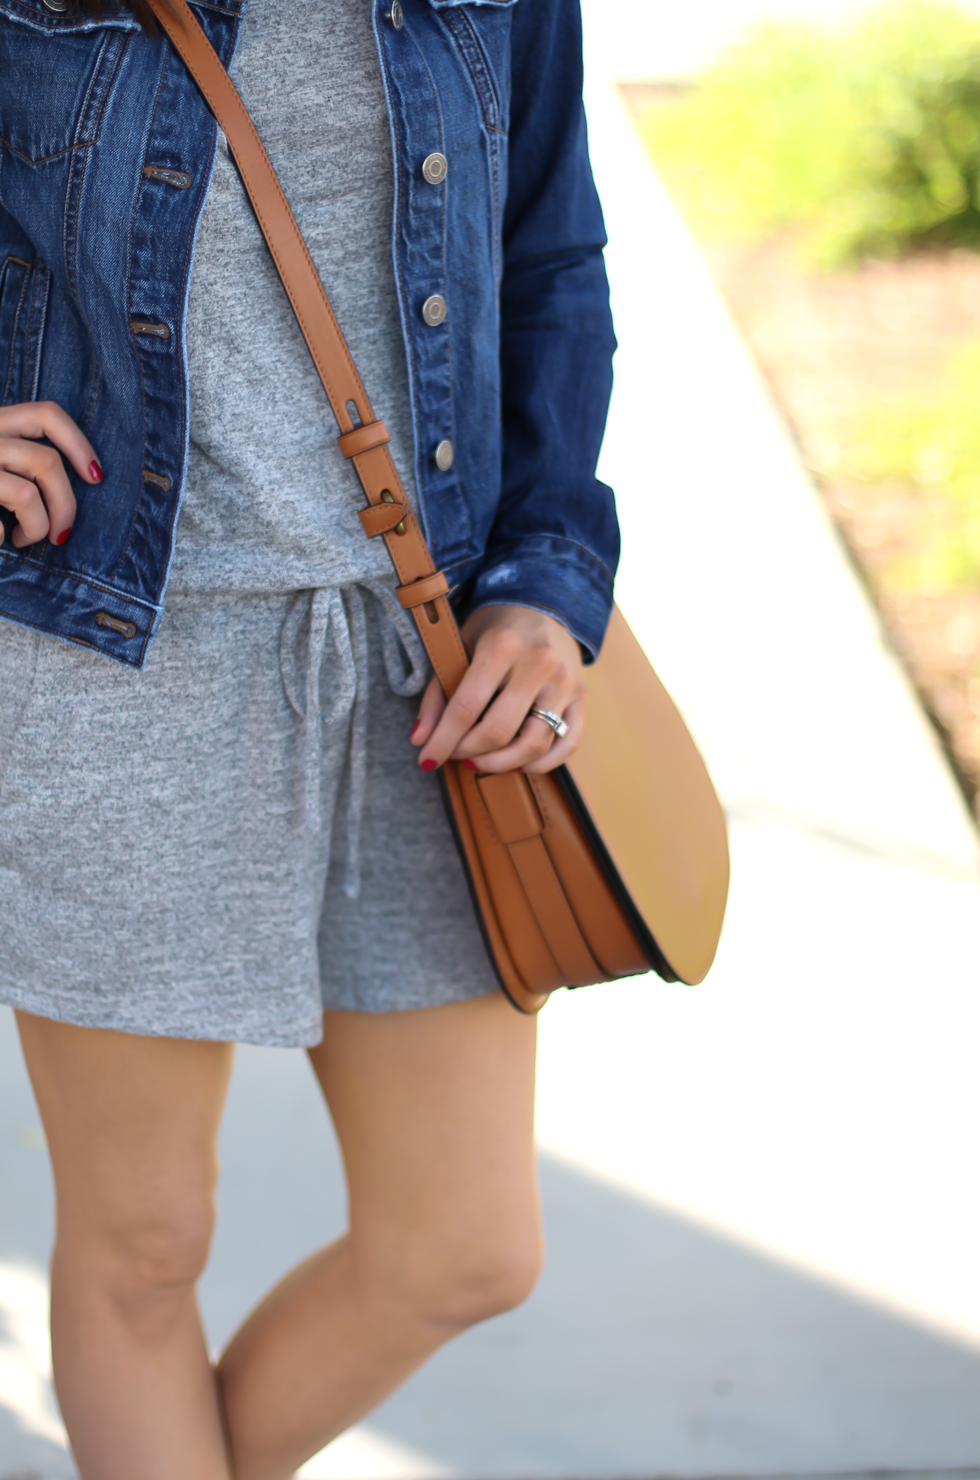 Grey Knit Denim Romper, Denim Jacket, Suede Wedge Sandals, Tan Leather Saddle Bag, Gap, Banana Republic, Chloe, Tory Burch 15